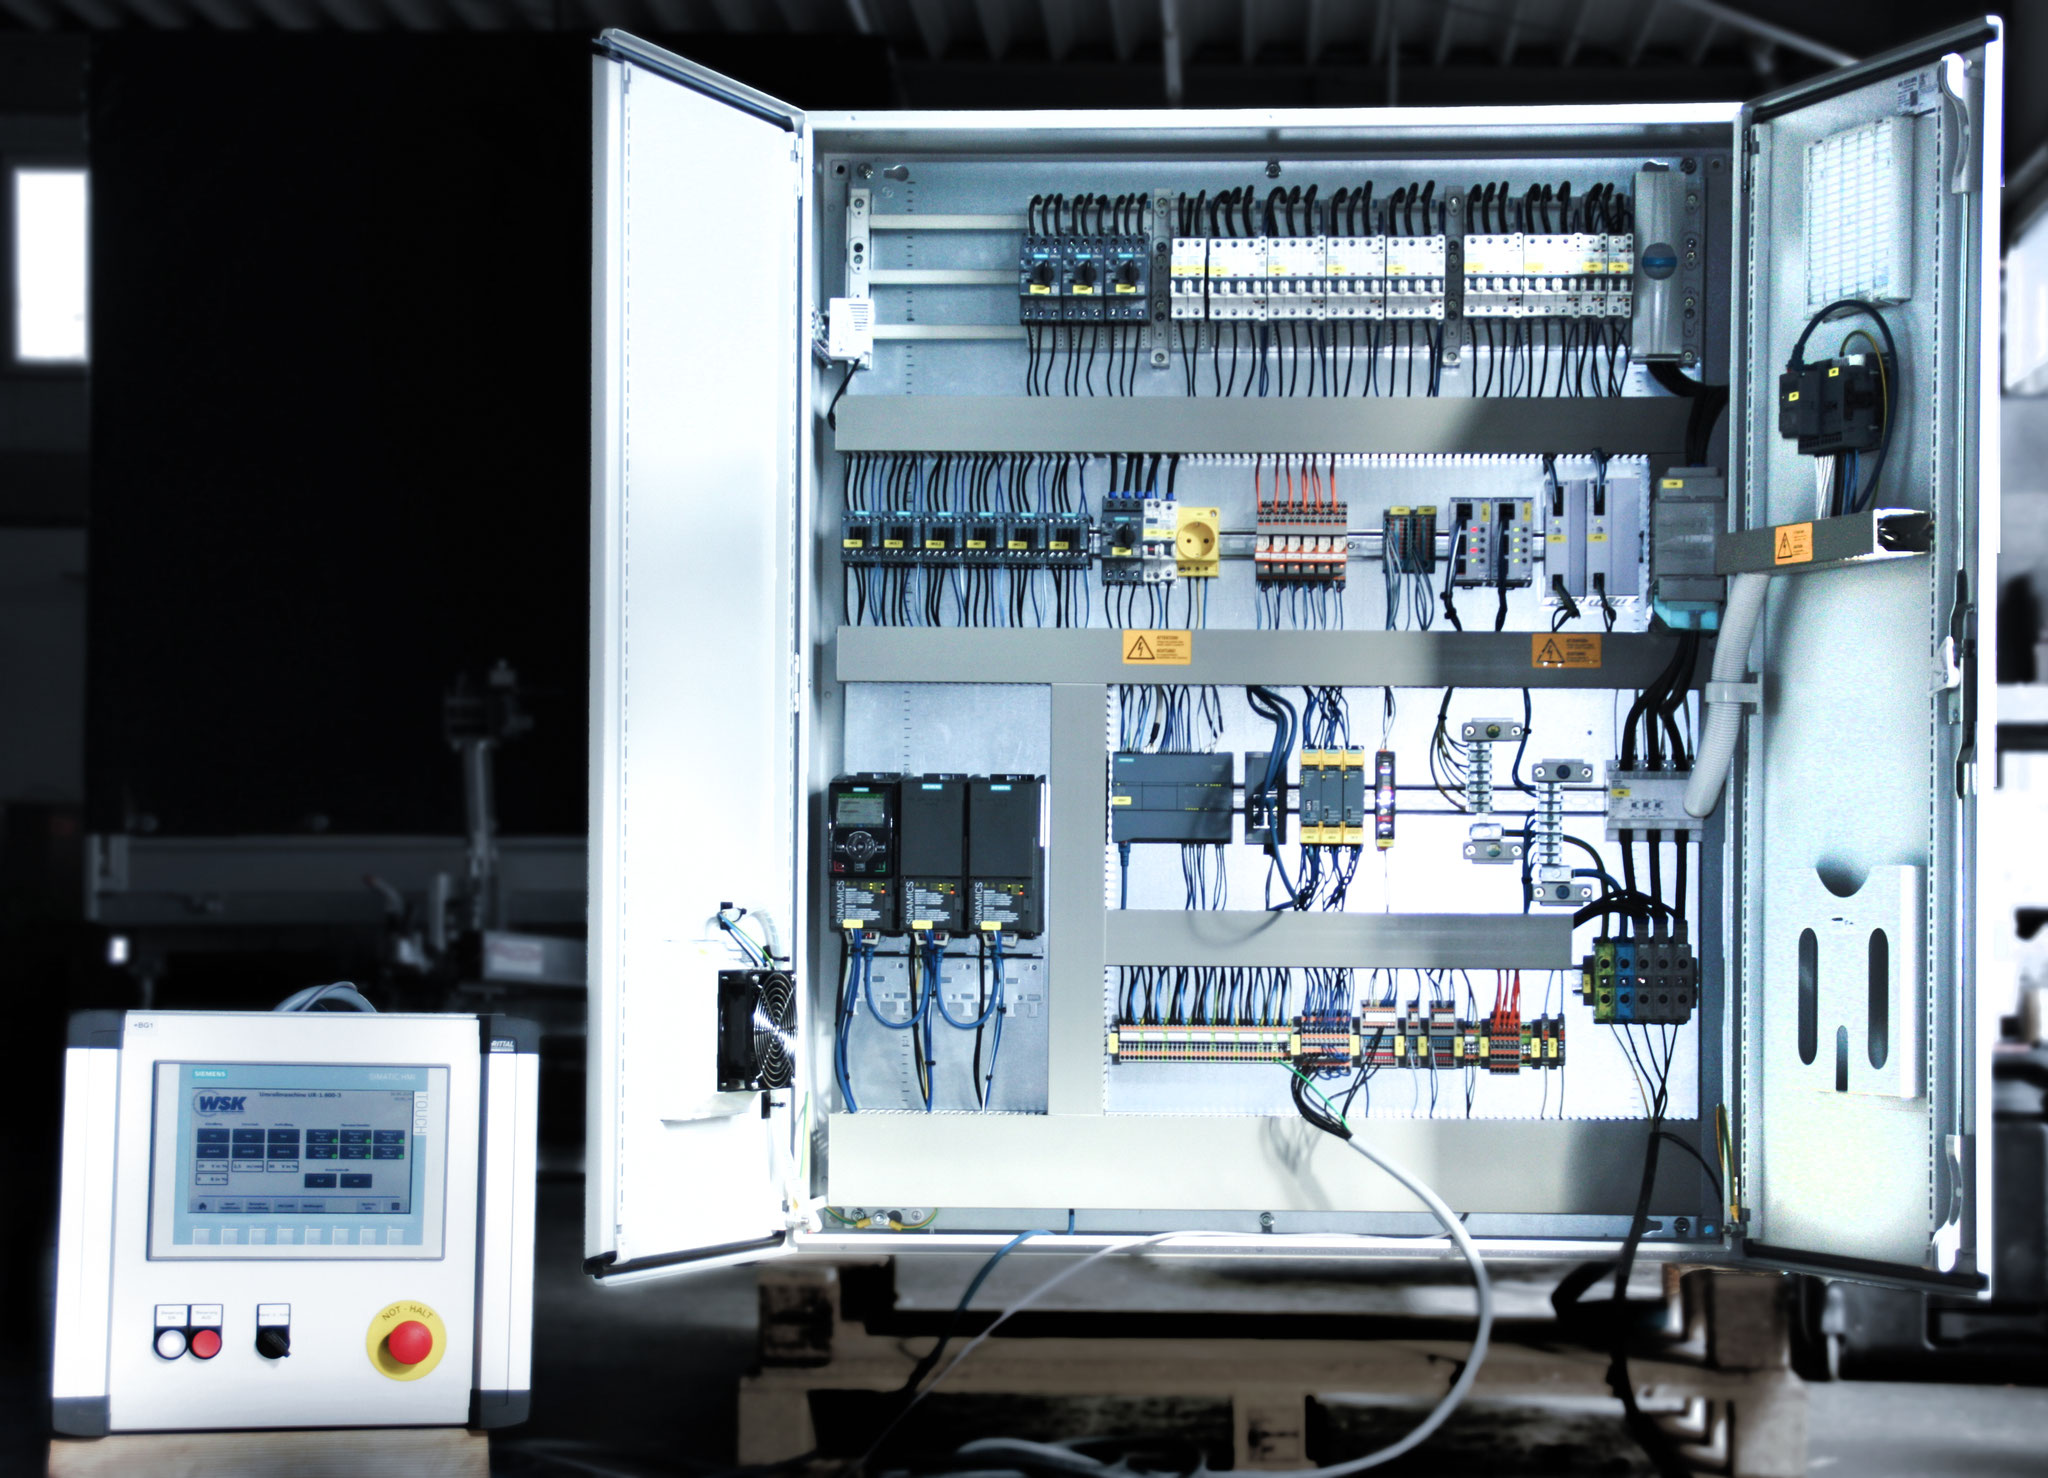 Control and drive system for winding machine